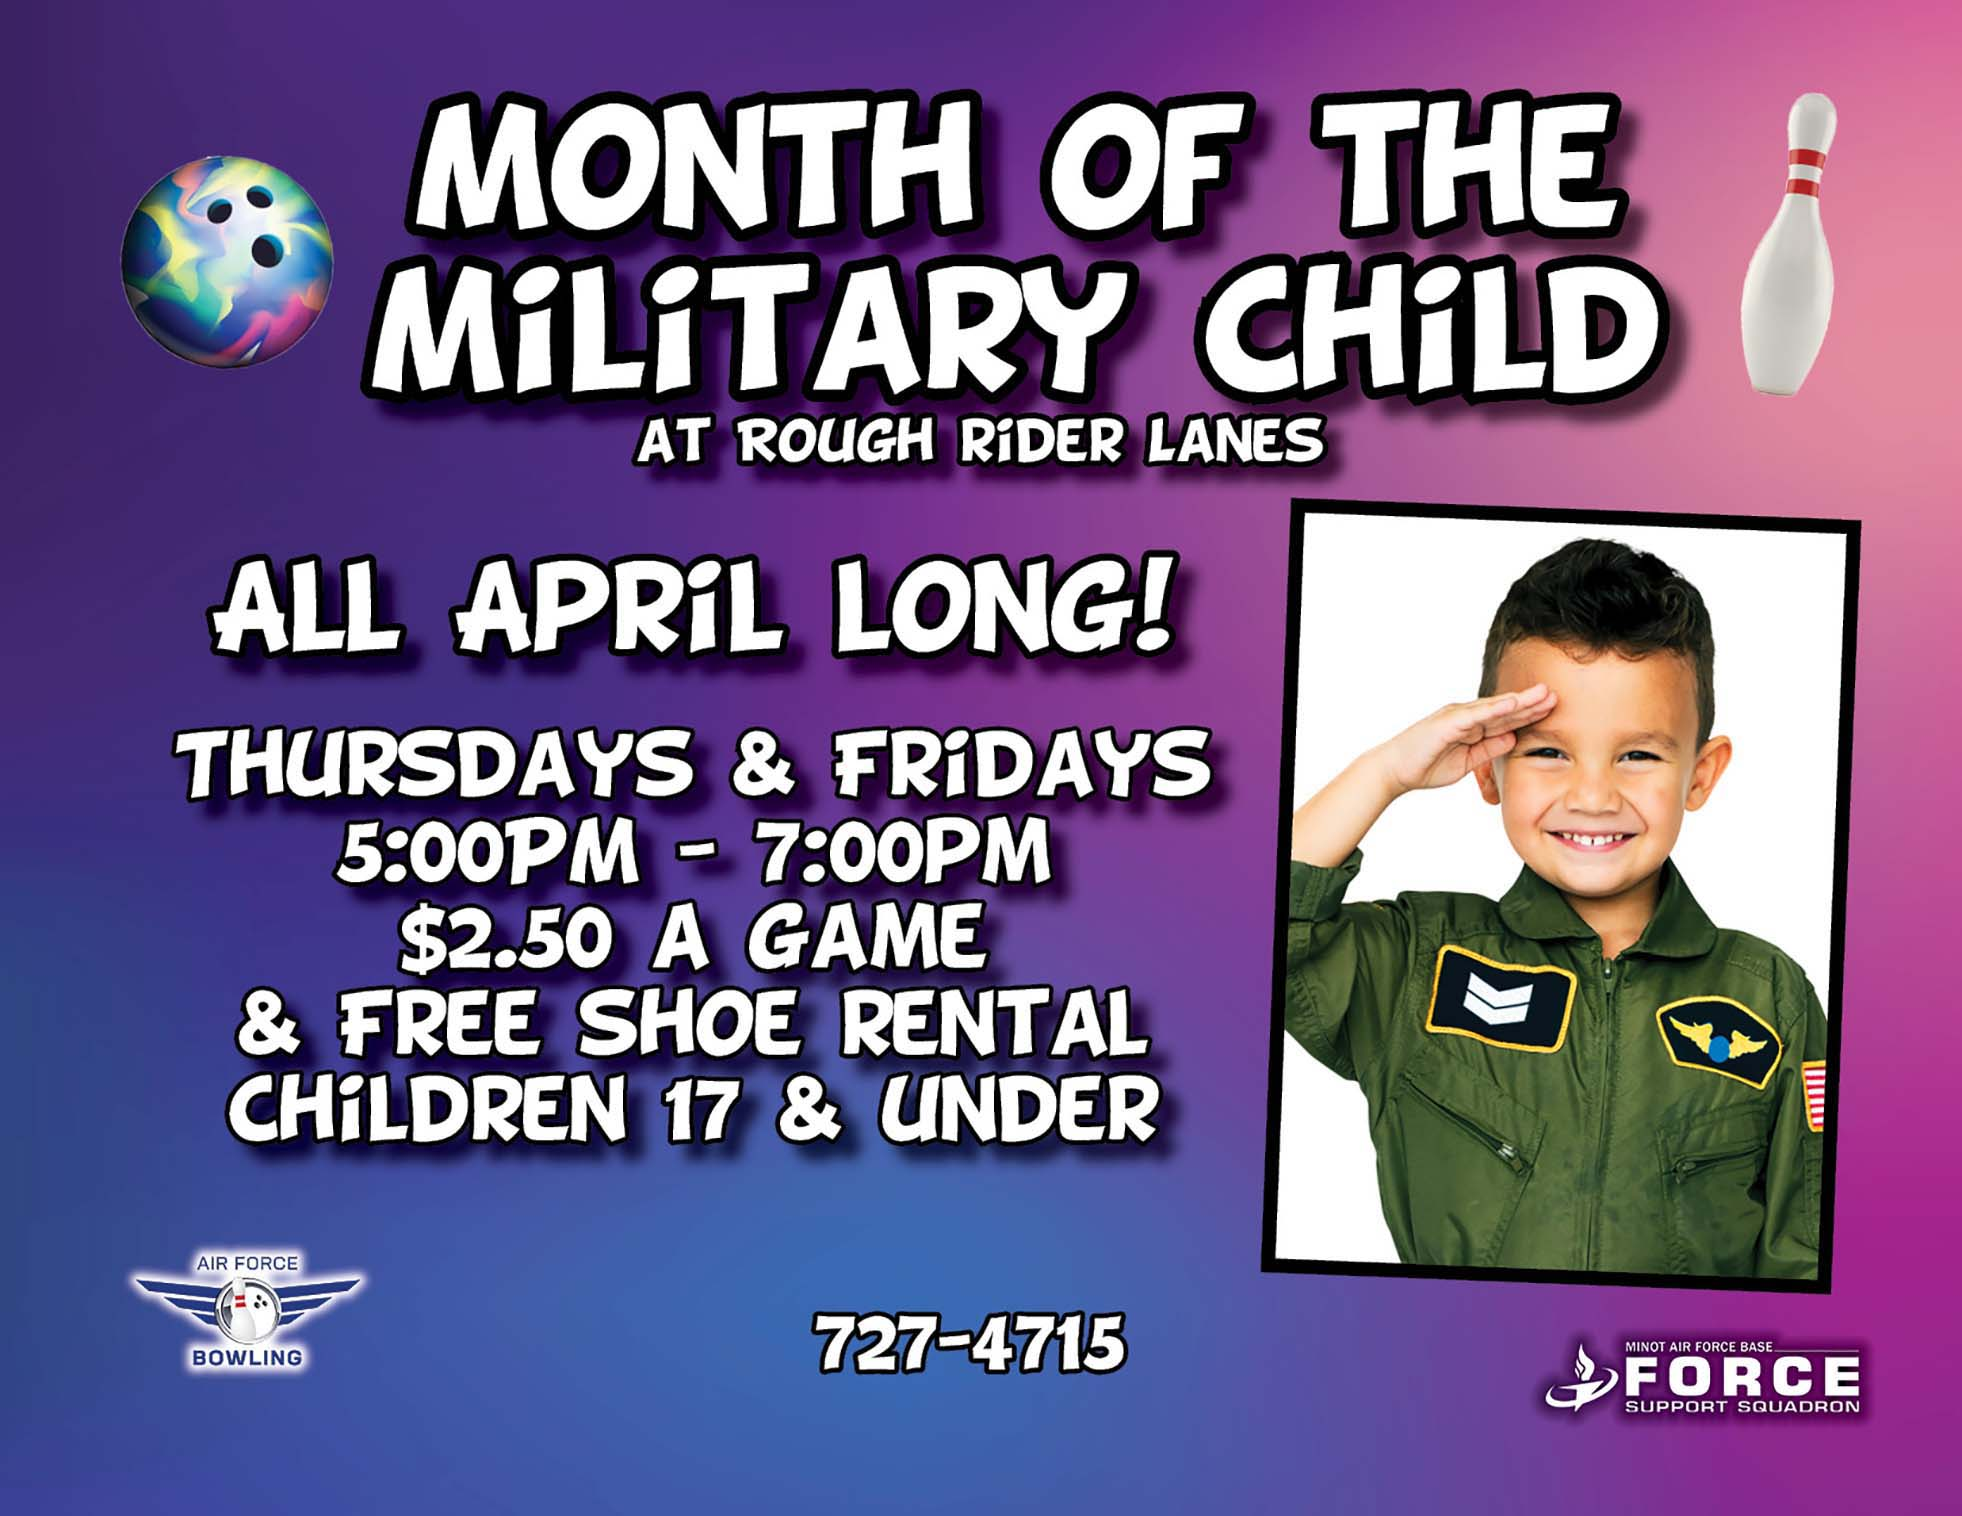 Month of the Military Child Bowling Special